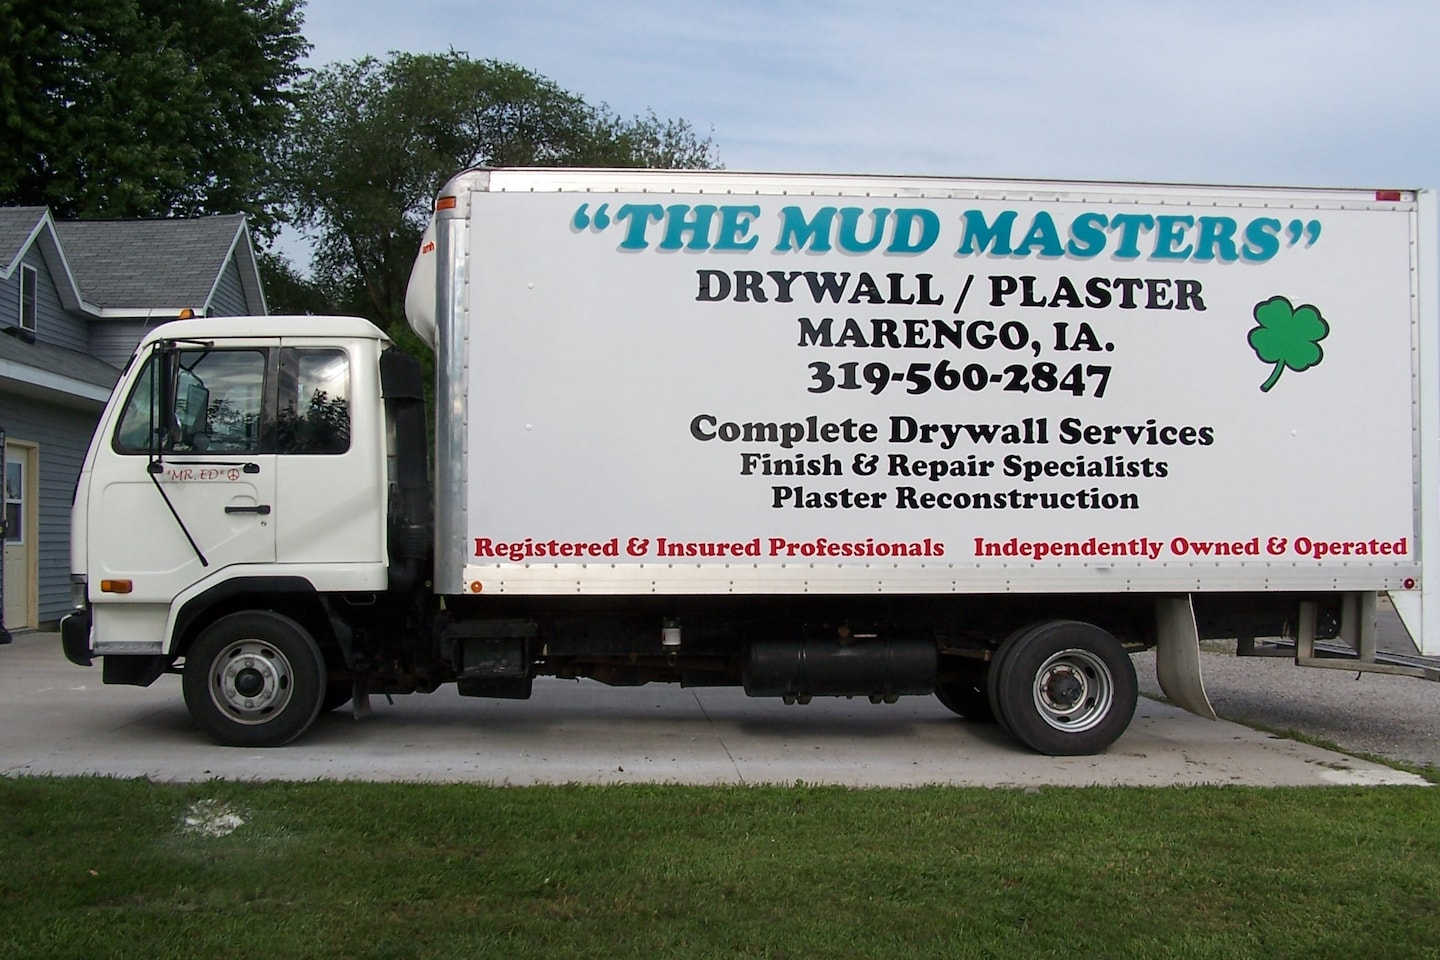 THE MUD MASTERS 319-560-2847